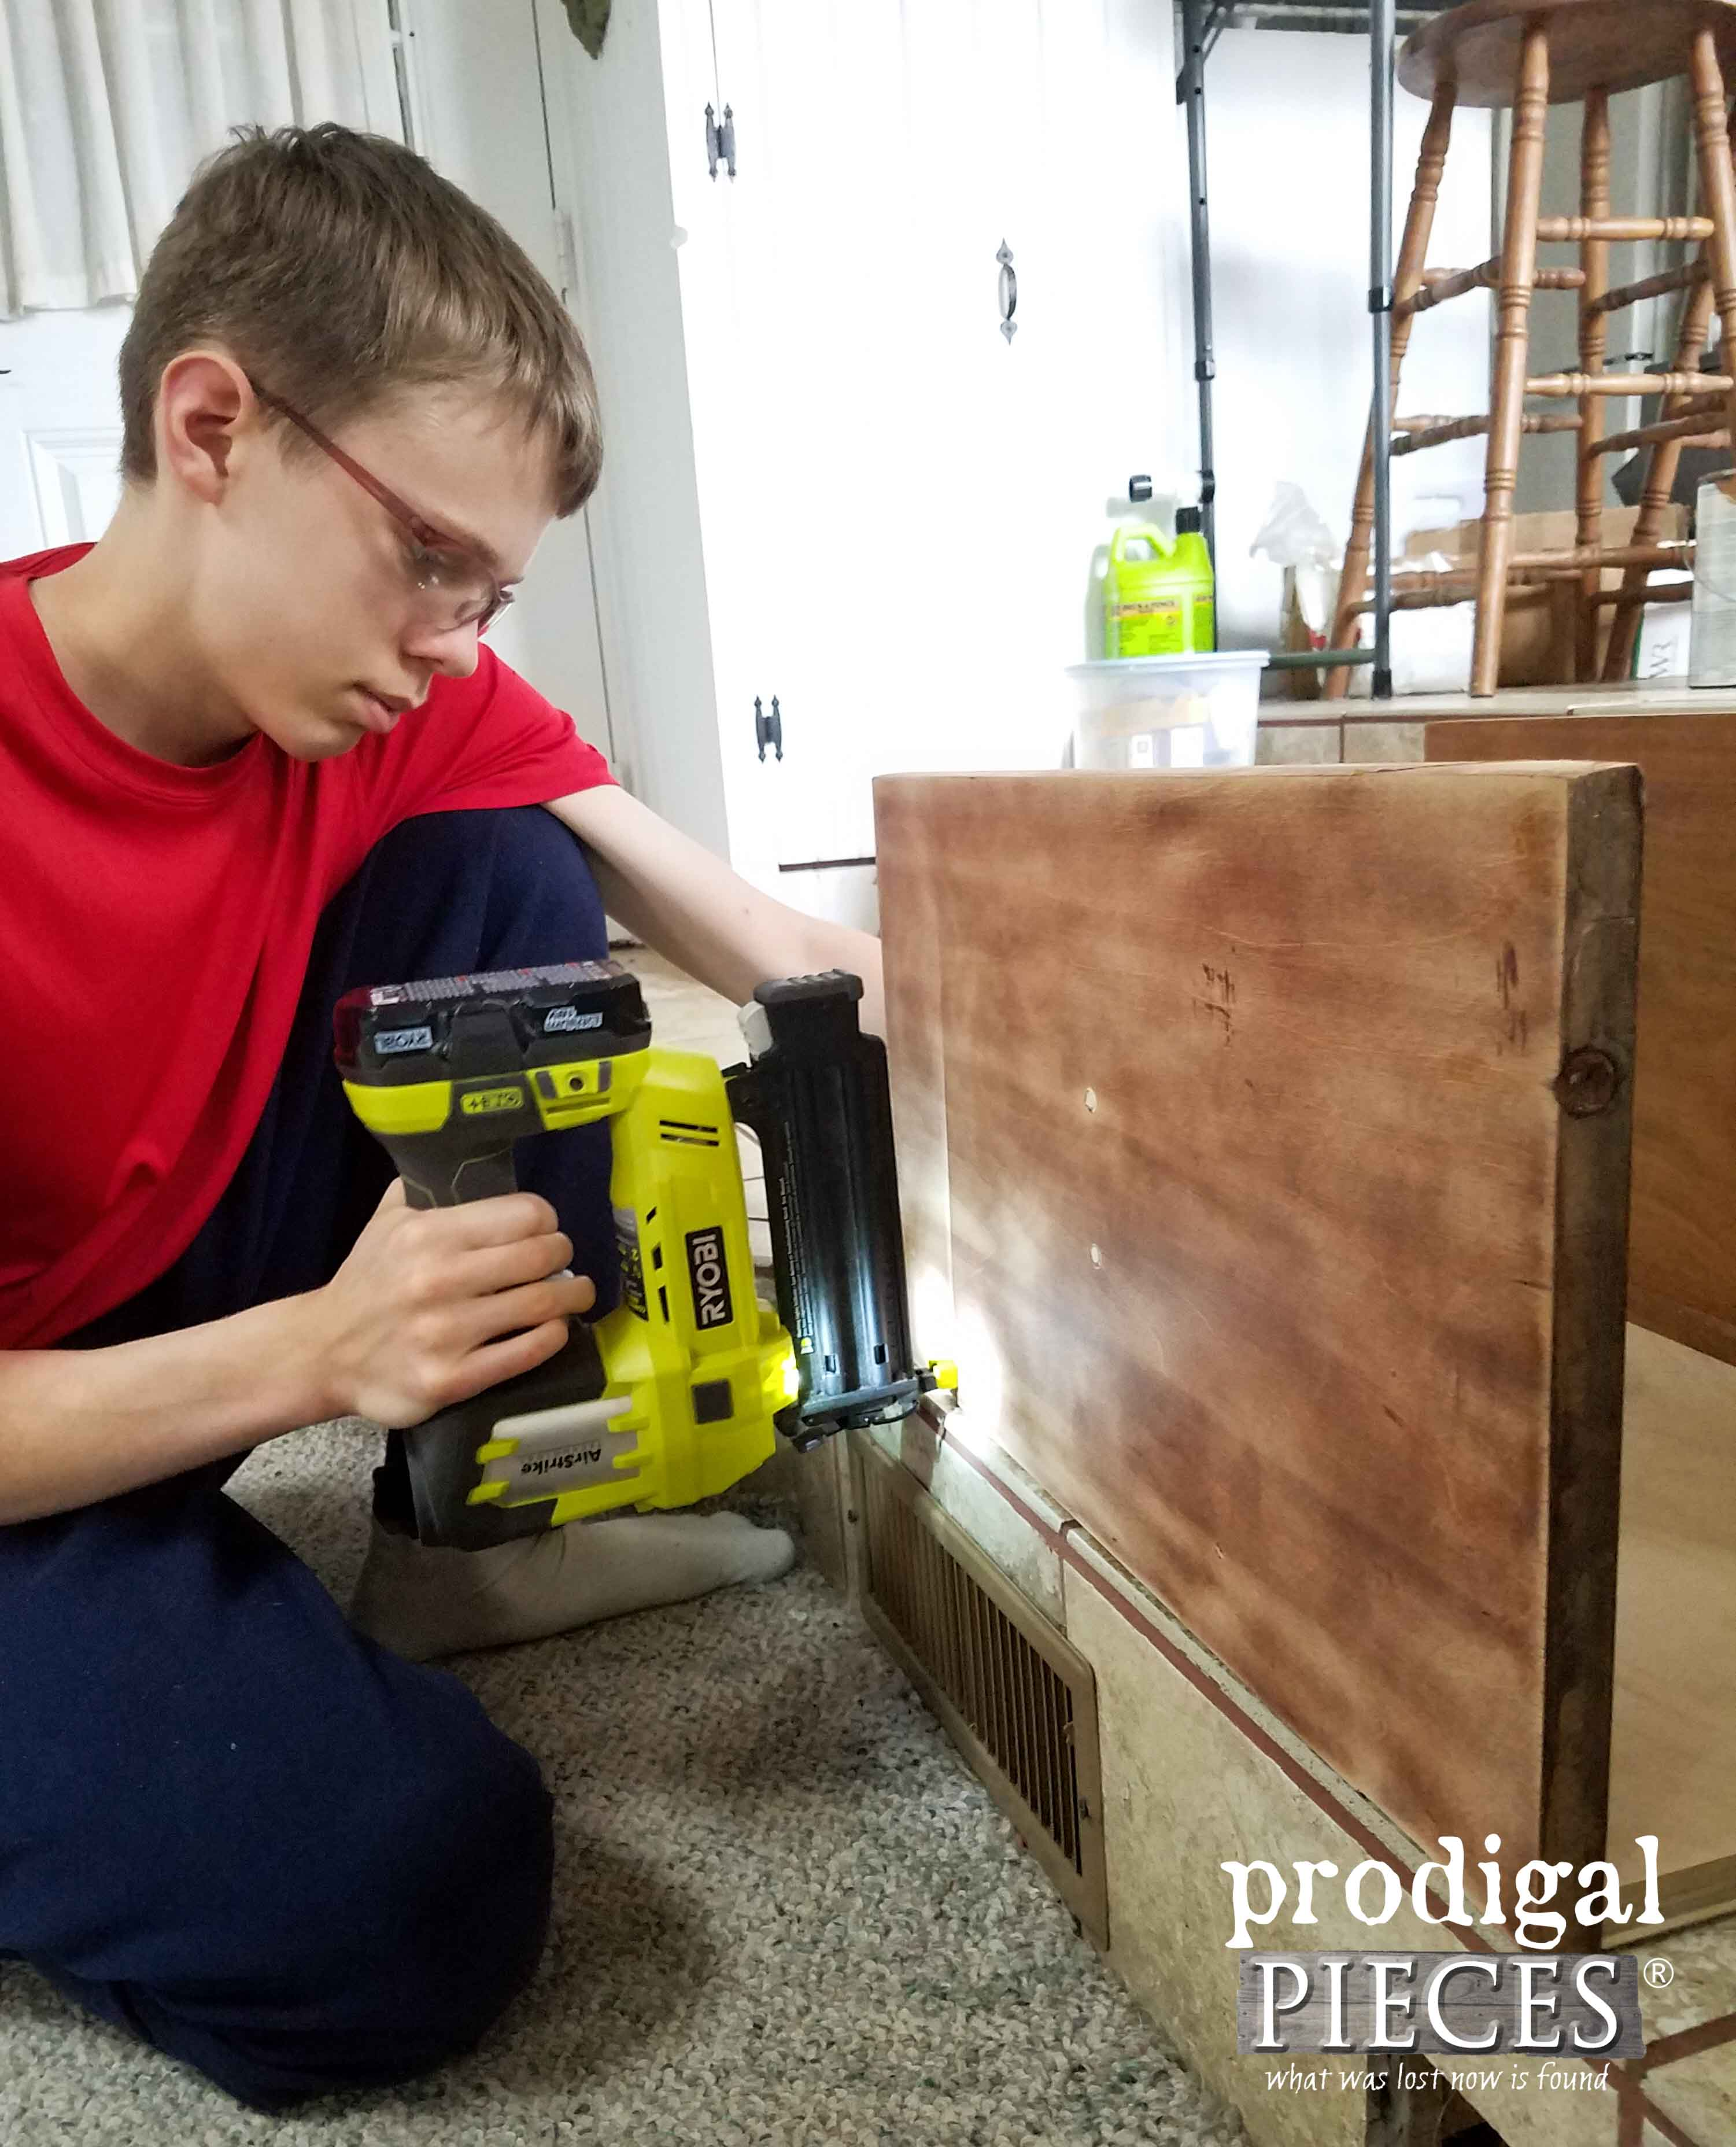 Nailing Repurposed Cabinet Doors Together with Ryobi AirStrike | Prodigal Pieces | prodigalpieces.com